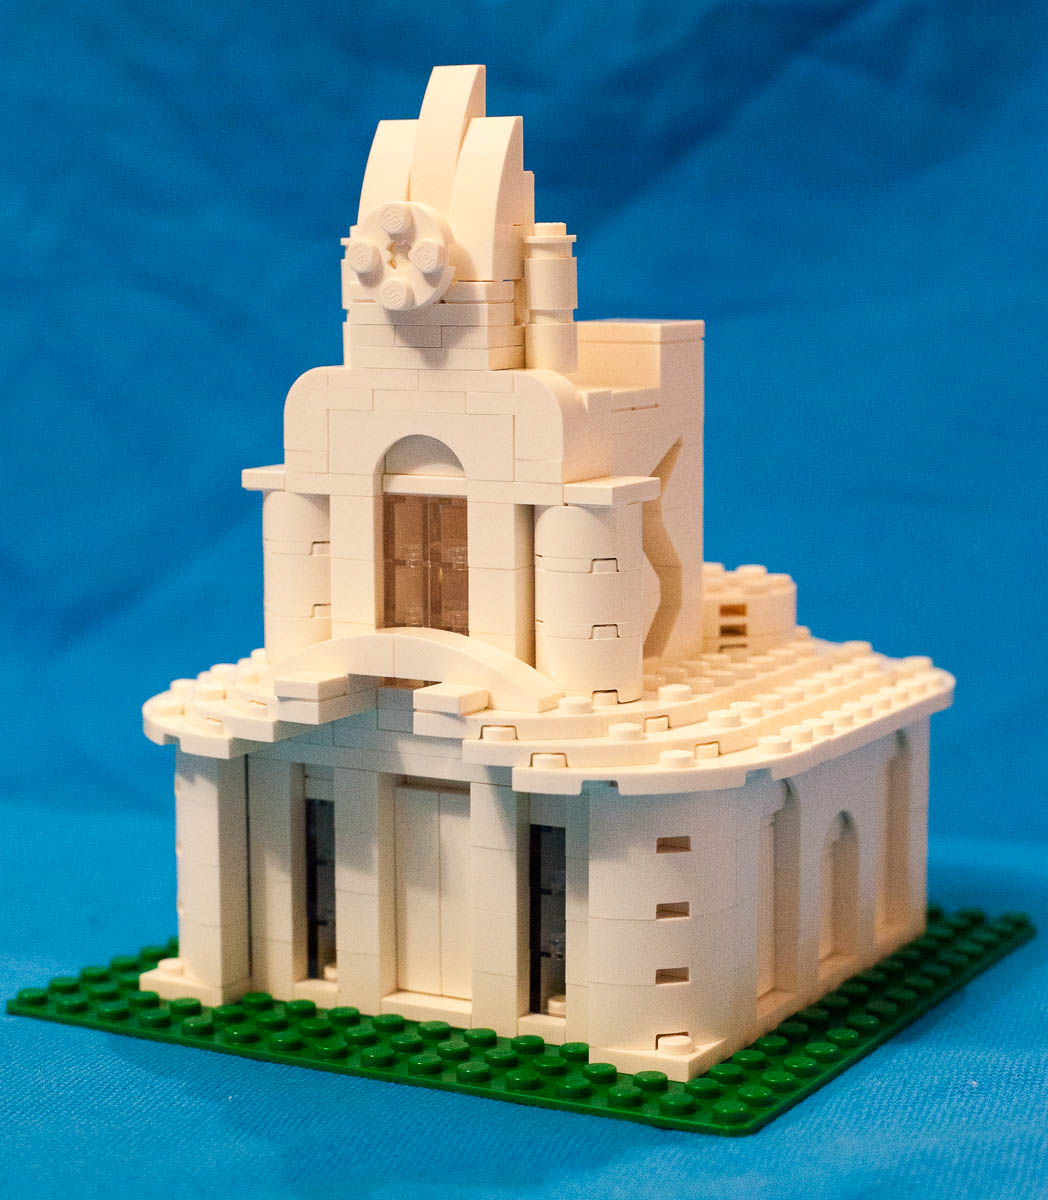 Lego Challenge 7 Build A Model In The Art Deco